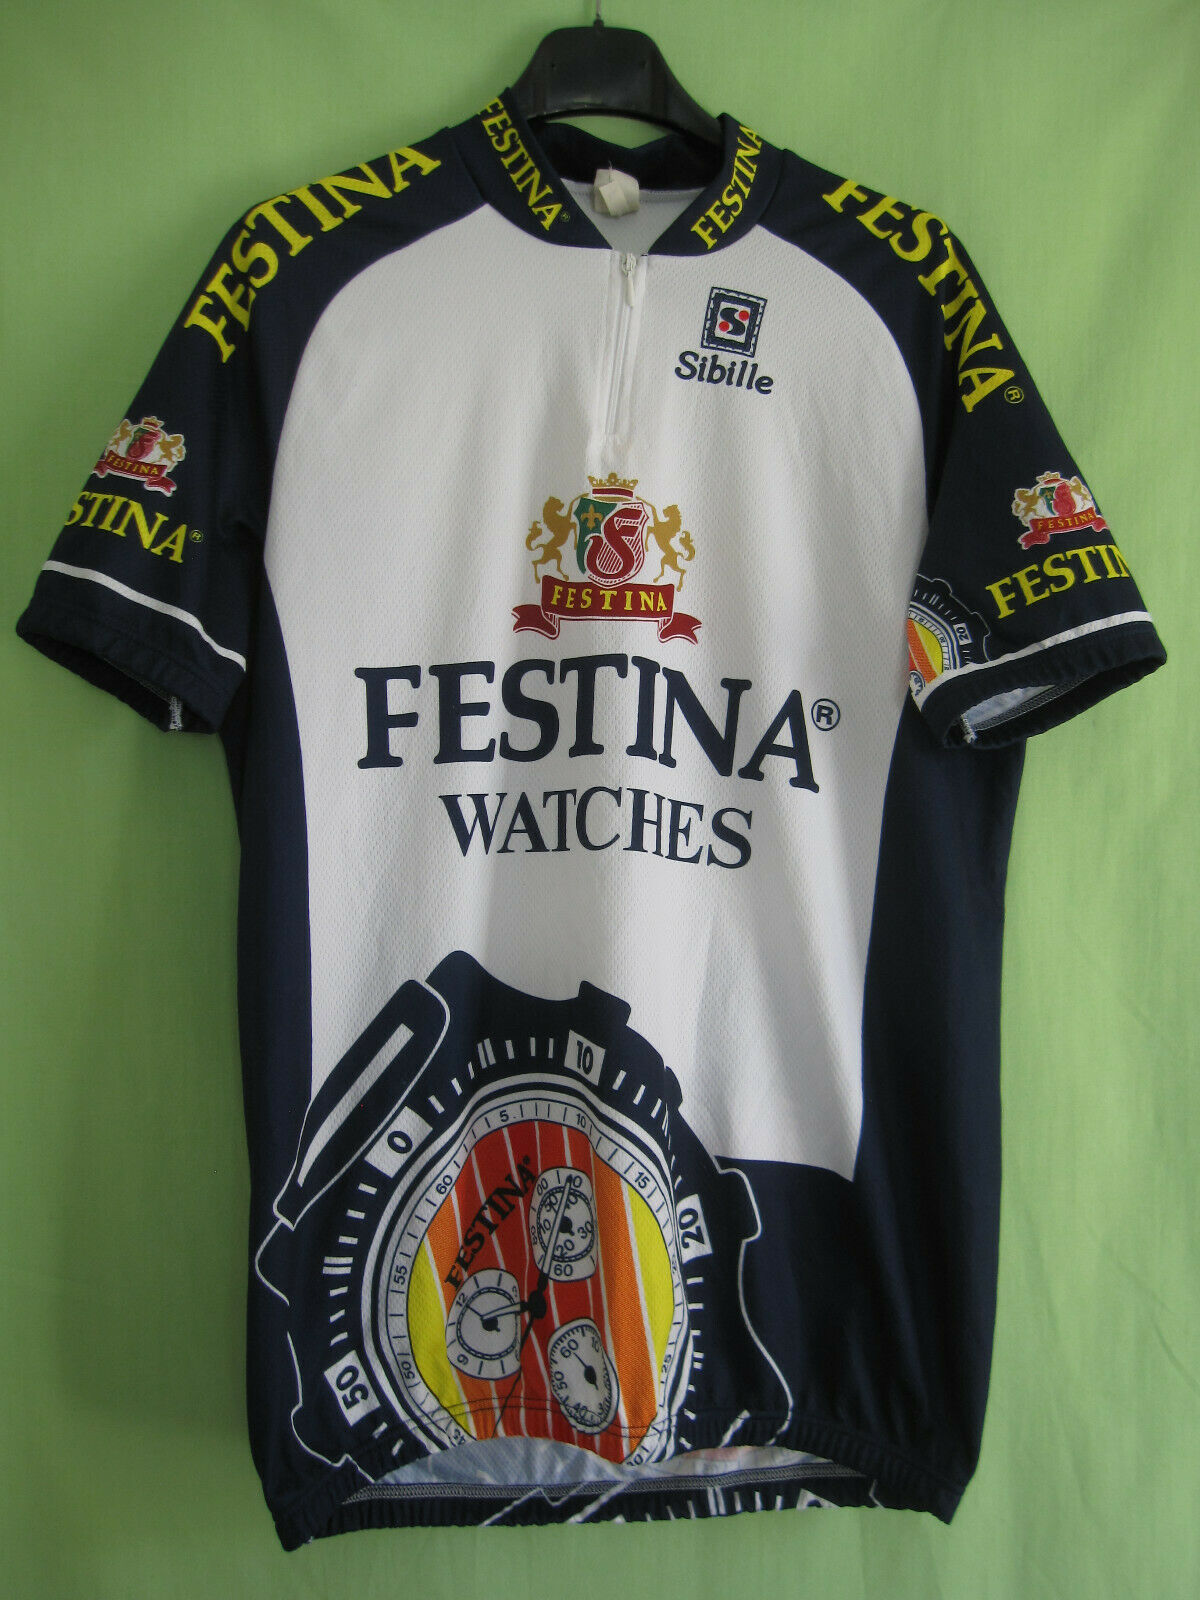 Maillot cycliste Festina Lotus Sibille Tour France jersey cycling - XL